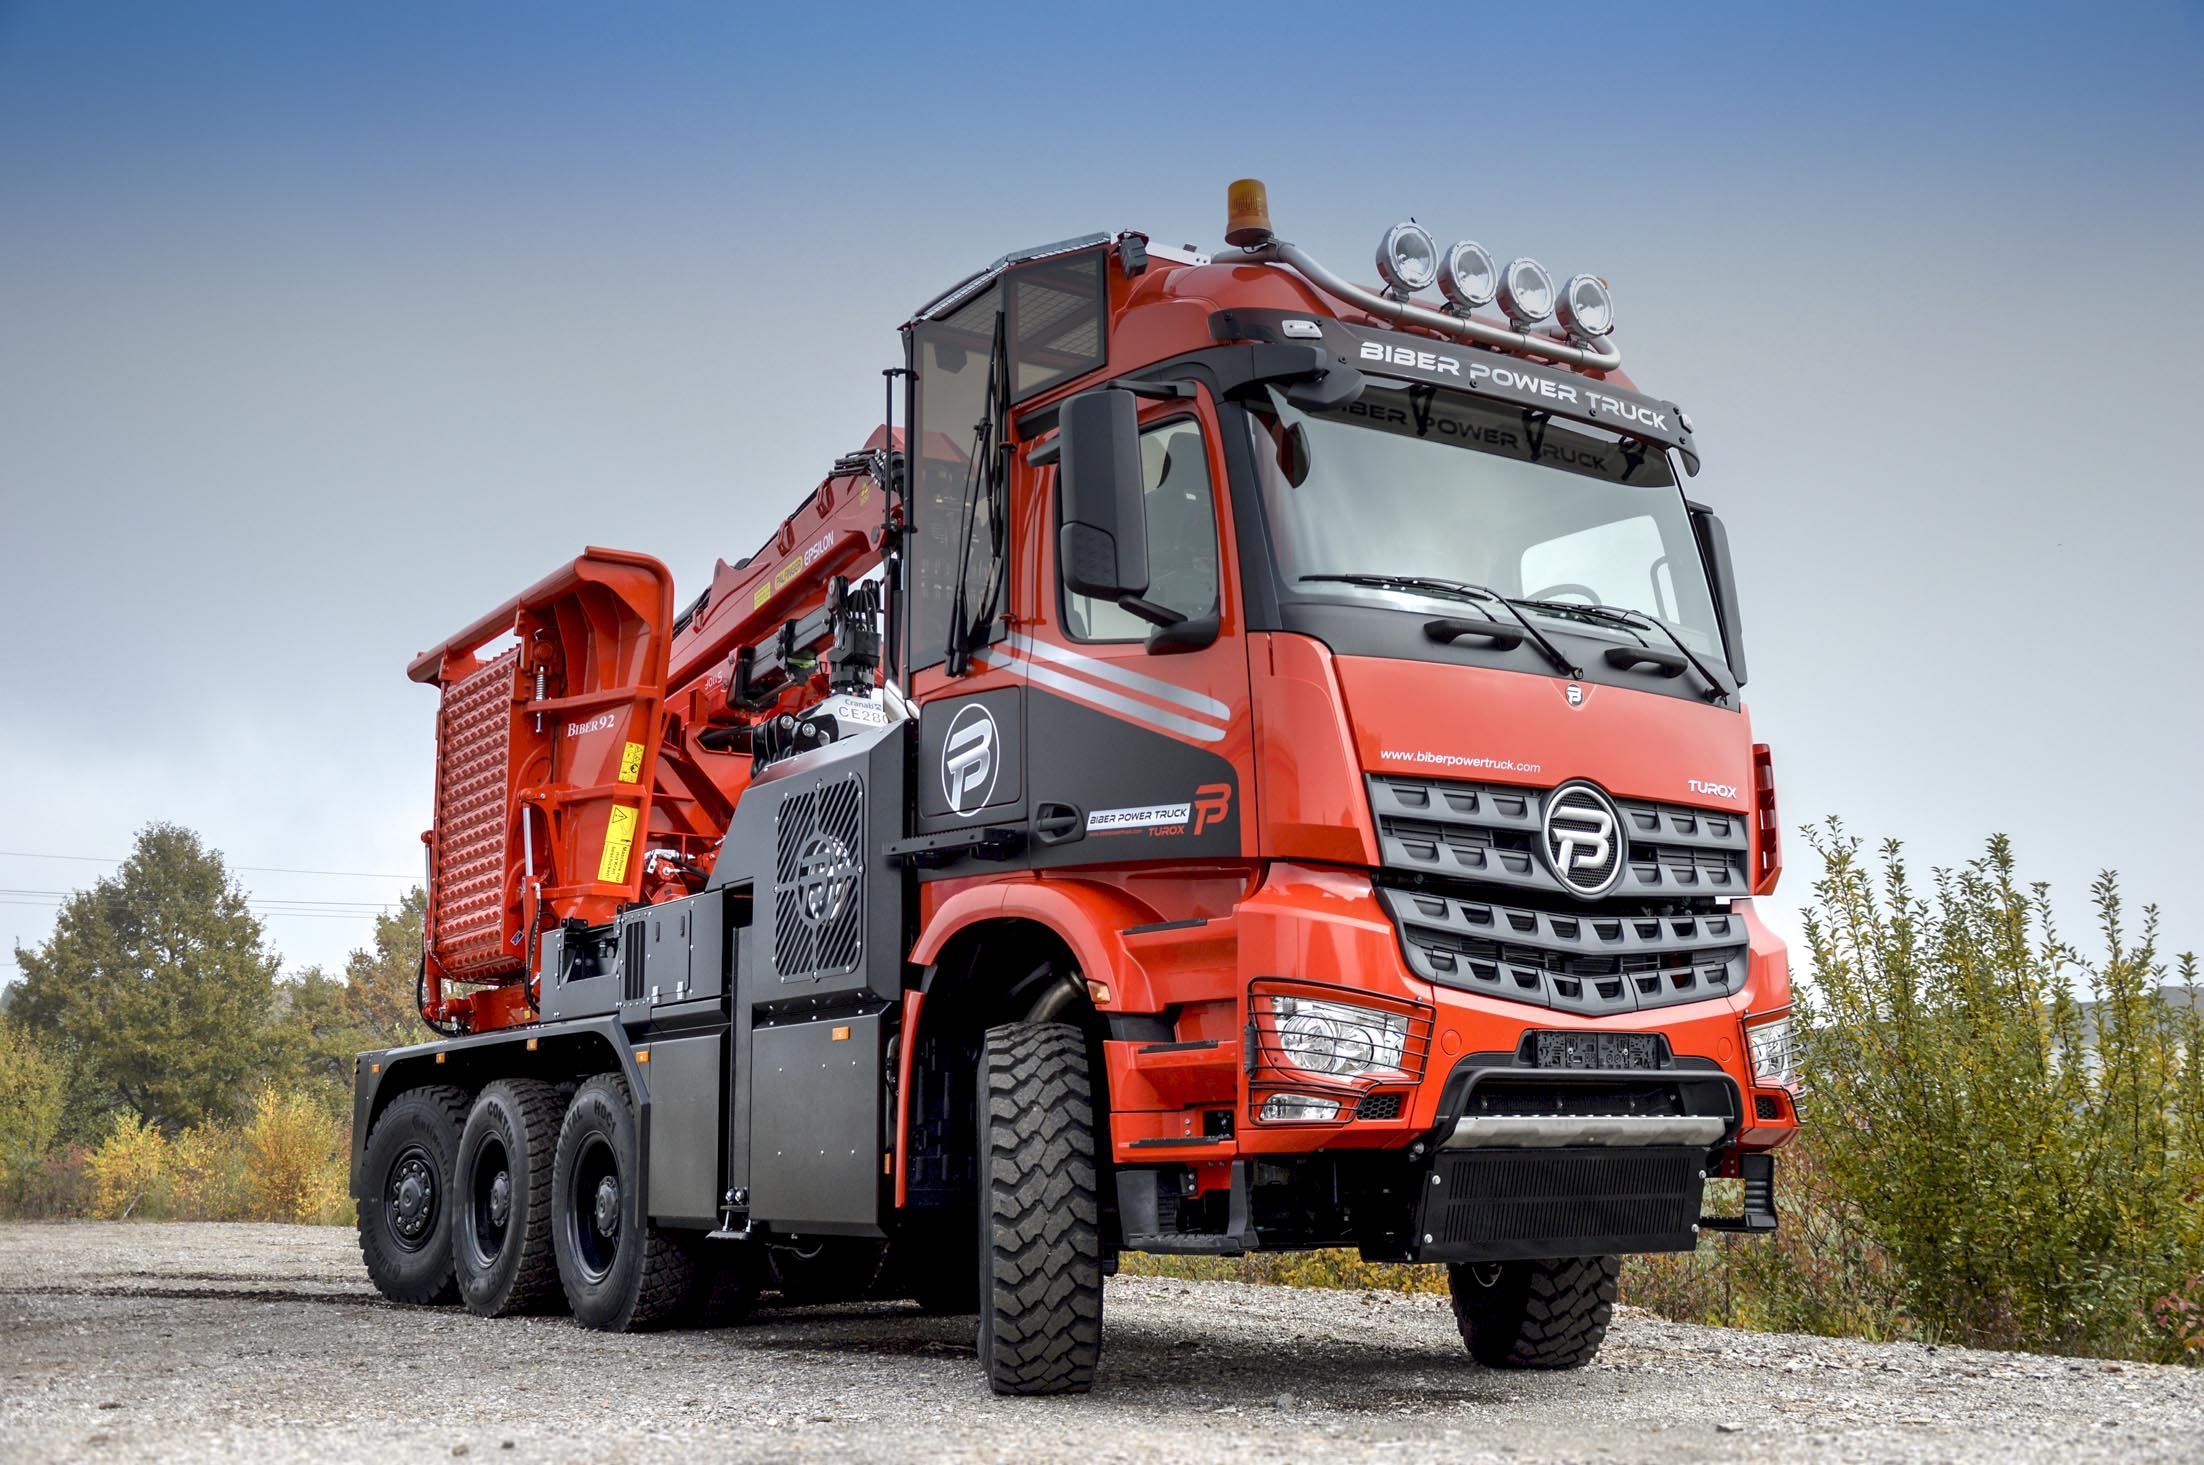 Paul nutzfahrzeuge develops and produces the all new special chassis for the biber power truck of the eschlb ck maschinenfabrik gmbh